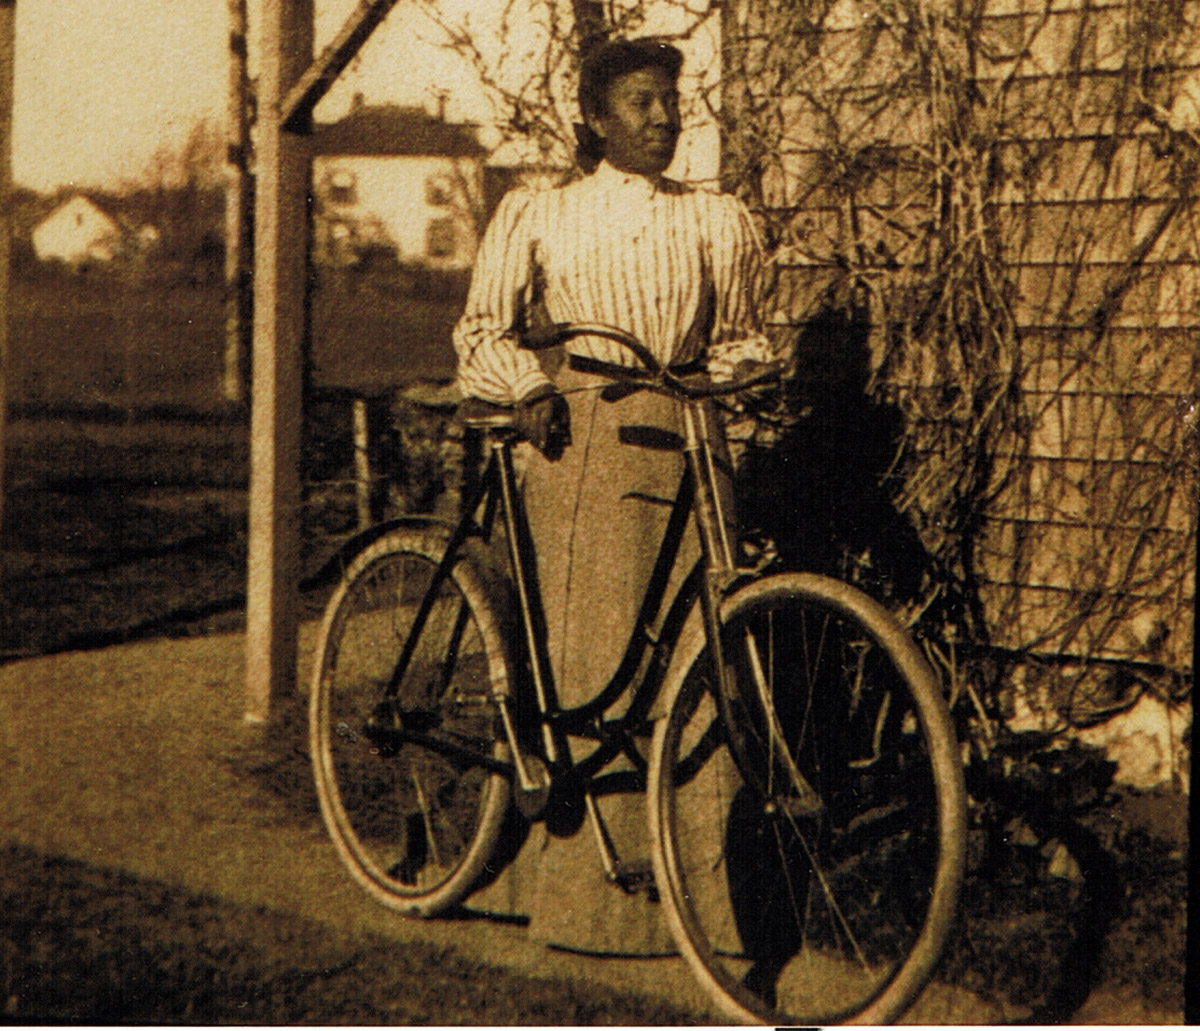 Emma Safford with her bicycle